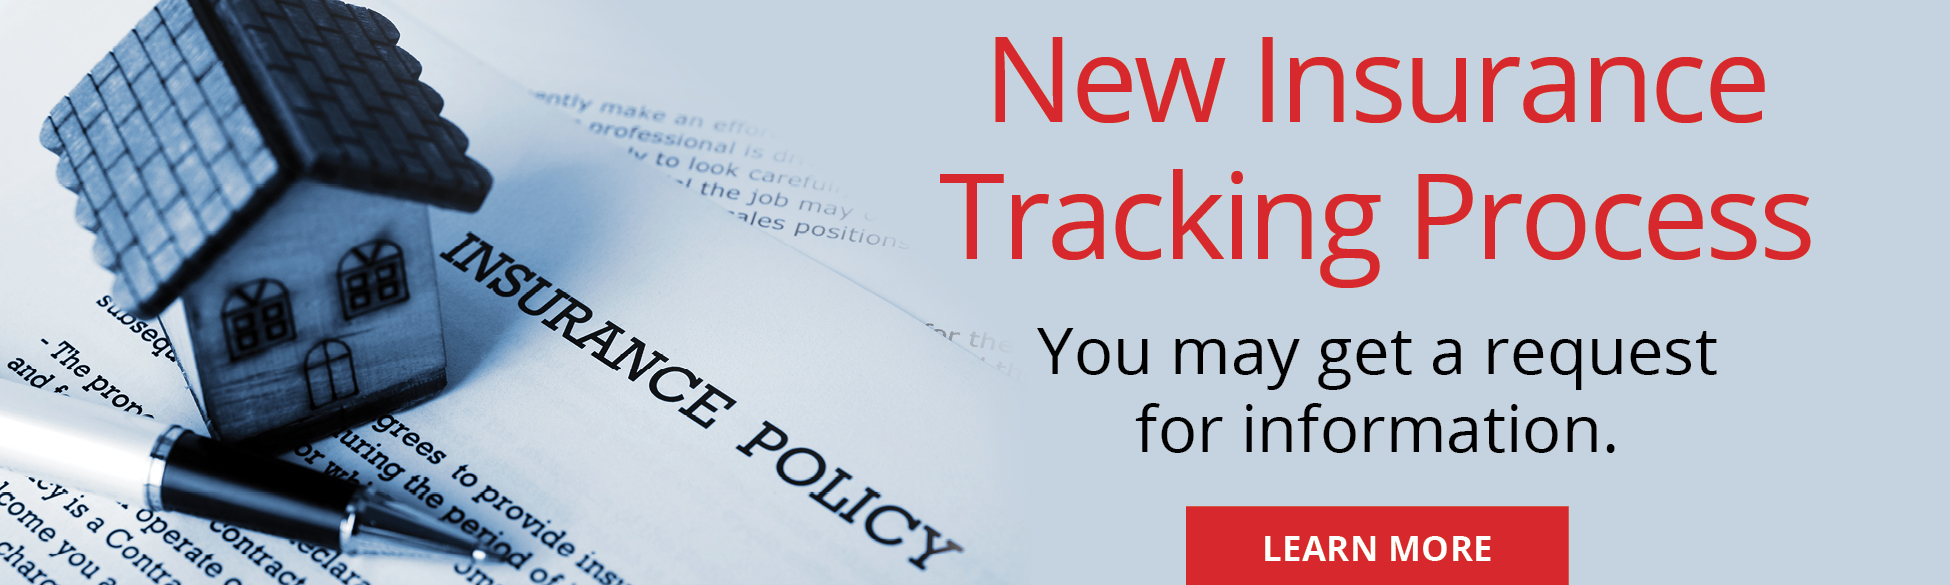 New Insurance Tracking Process You aay get a request for information. Learn More